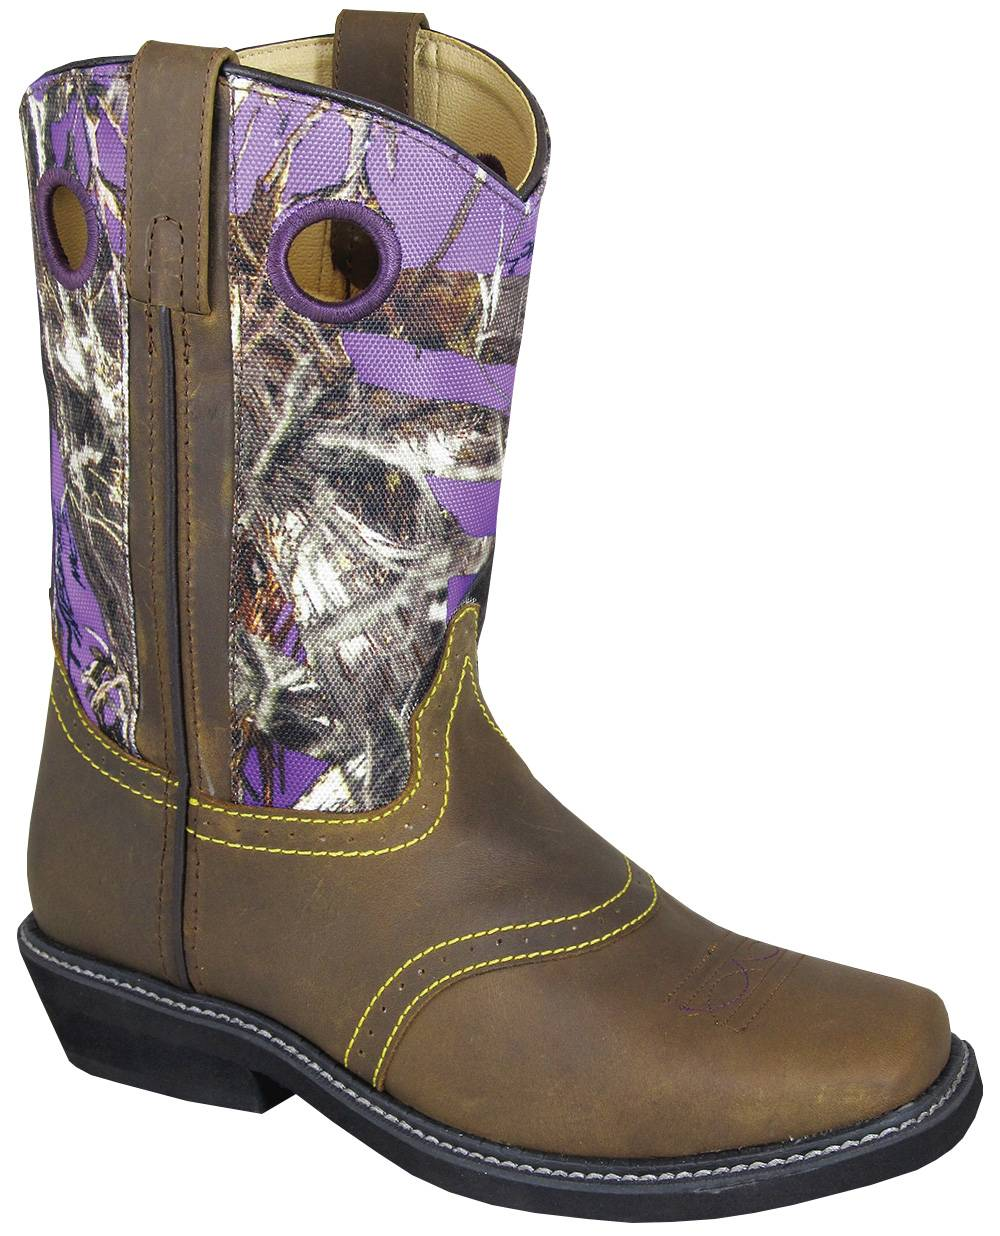 Smoky Mountain Cypress Crepe Boots - Ladies, Brown/Purple Camo